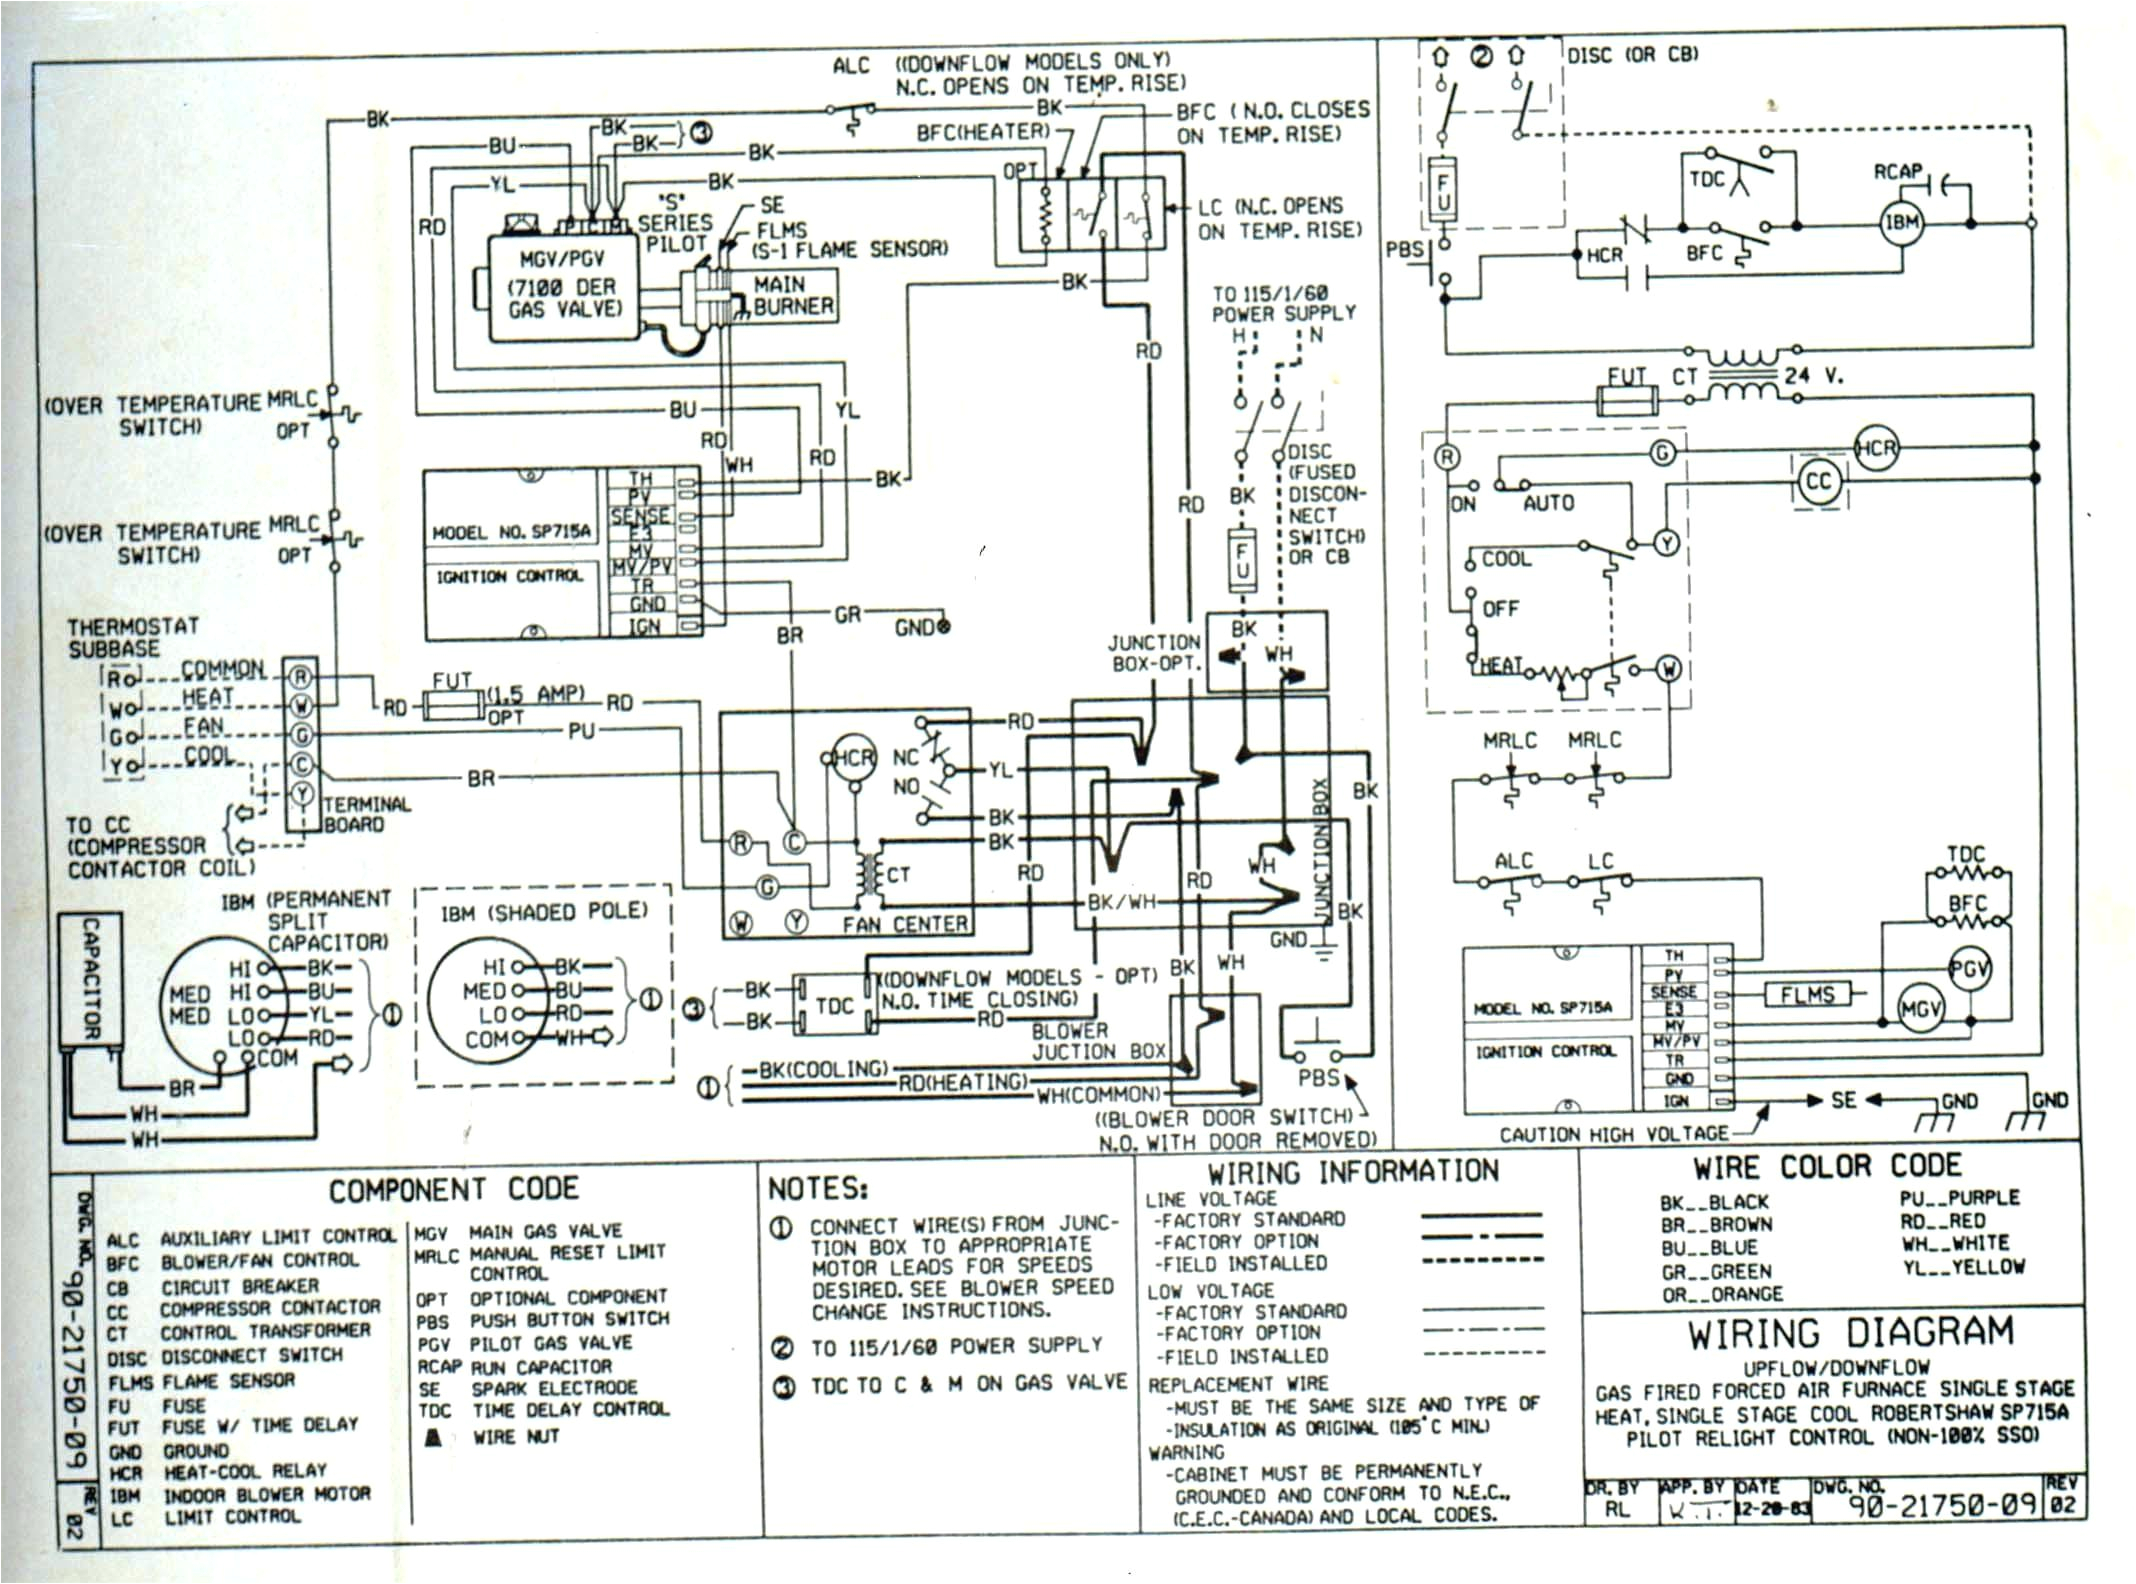 air conditioner wiring diagram for 1200 xl wiring diagram ame air conditioner wiring diagram for 1200 xl